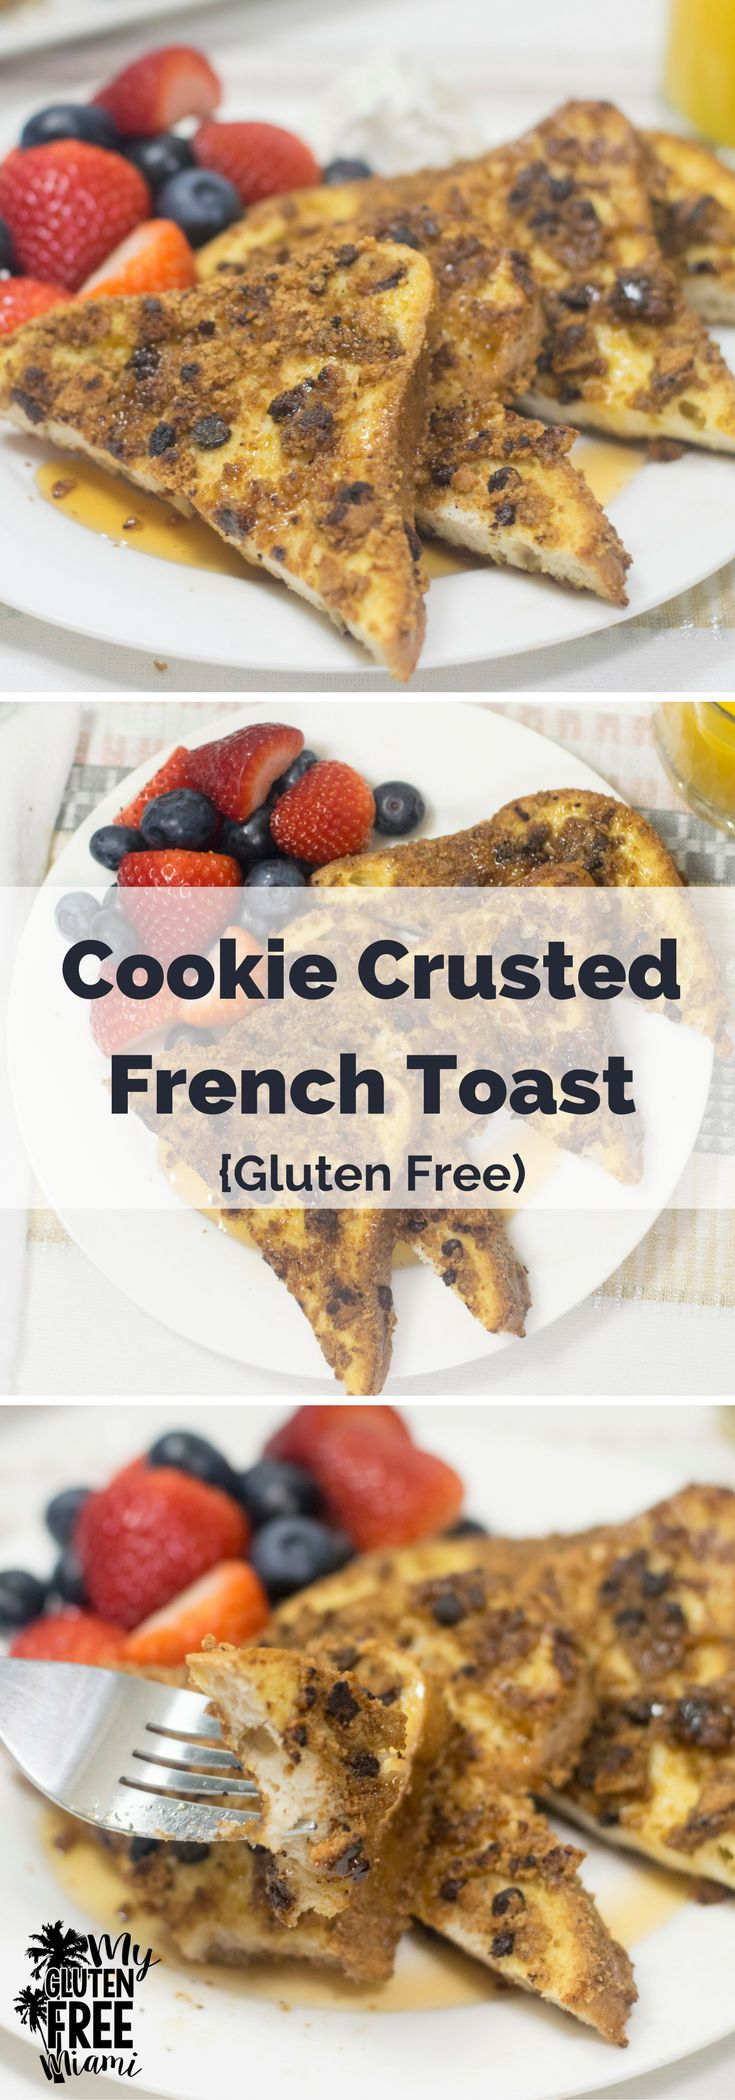 Everyone loves French Toast, take it to the next level with Cookie Crusted French Toast- the perfect, indulgent gluten free breakfast. via @GLUTENFREEMIAMI